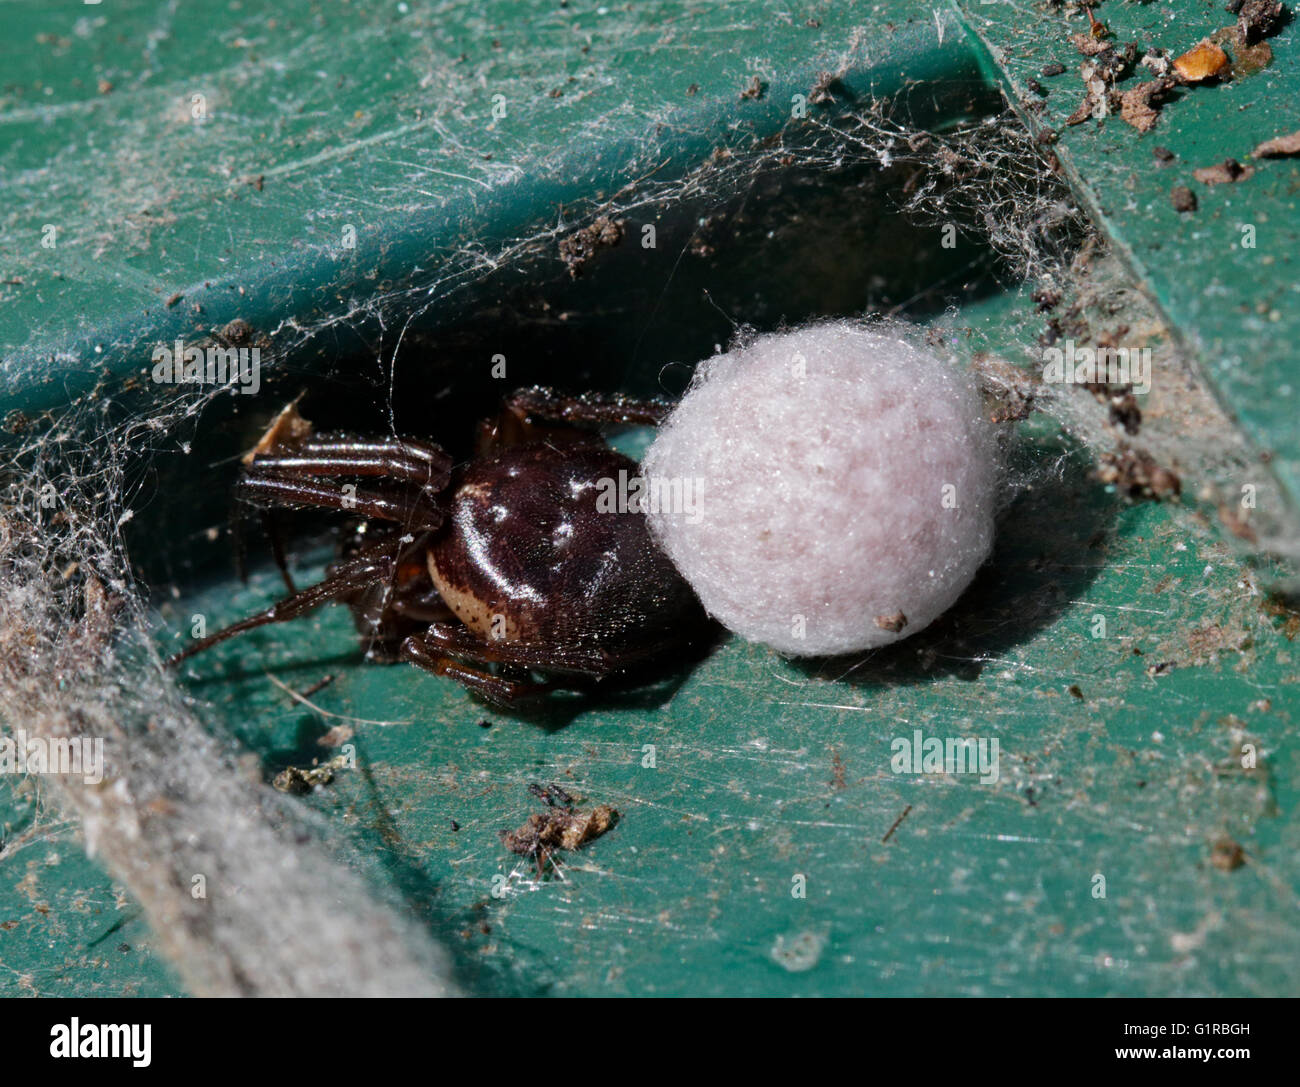 Spider with Egg Sac, UK - Stock Image